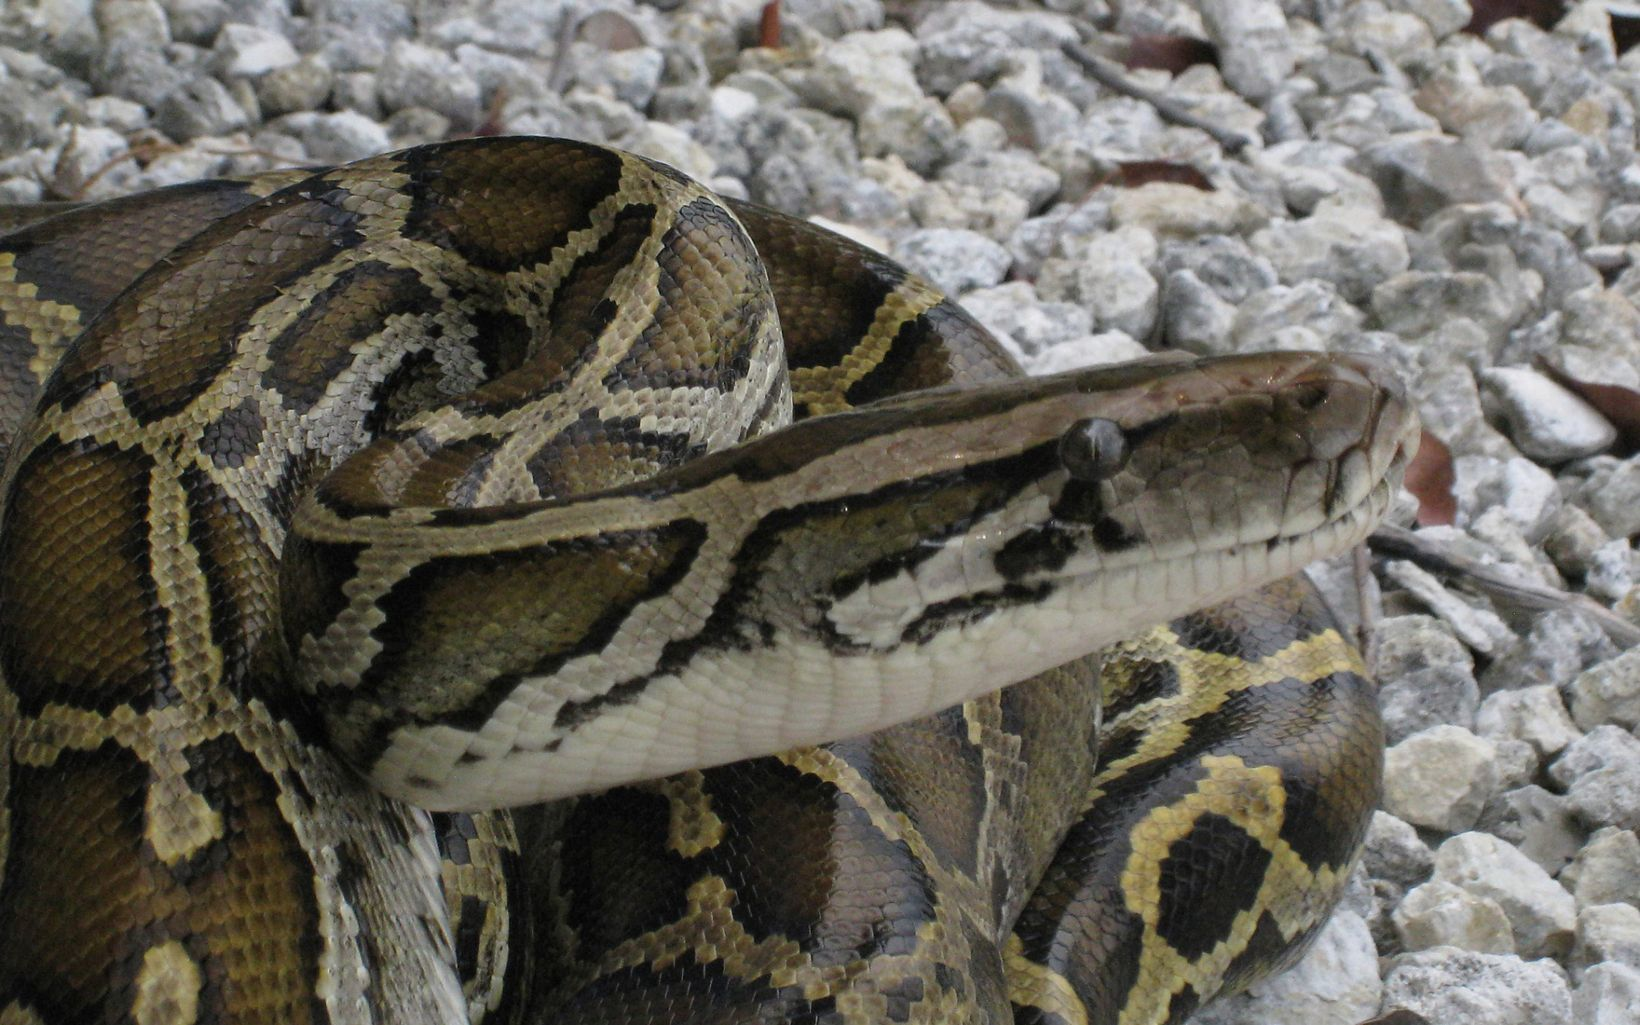 A large Burmese python coiled up with its head sticking out.